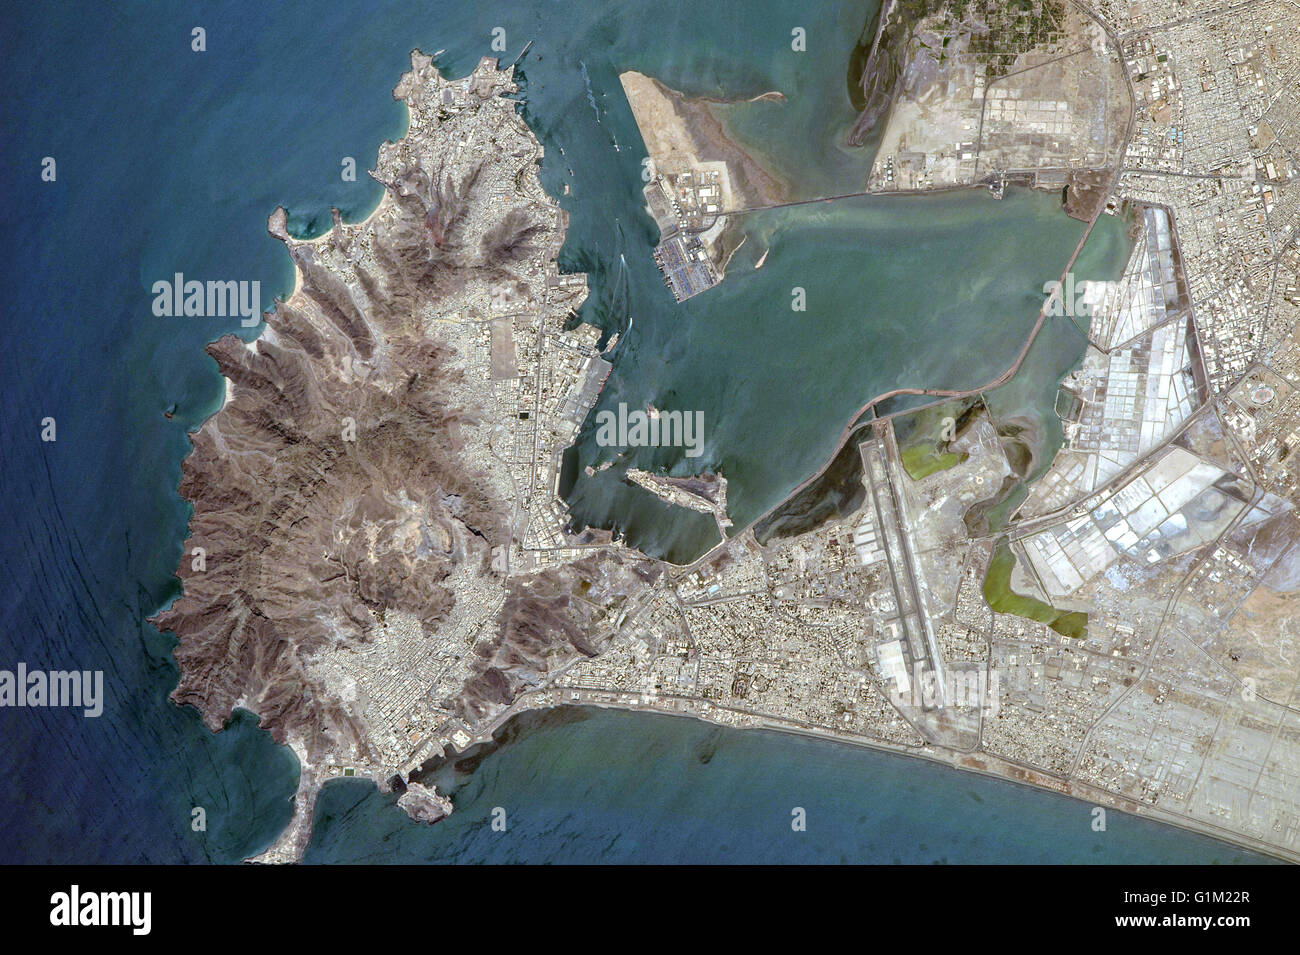 The middle eastern country of Yemen and the ancient port city of Aden located by the eastern approach to the Red - Stock Image